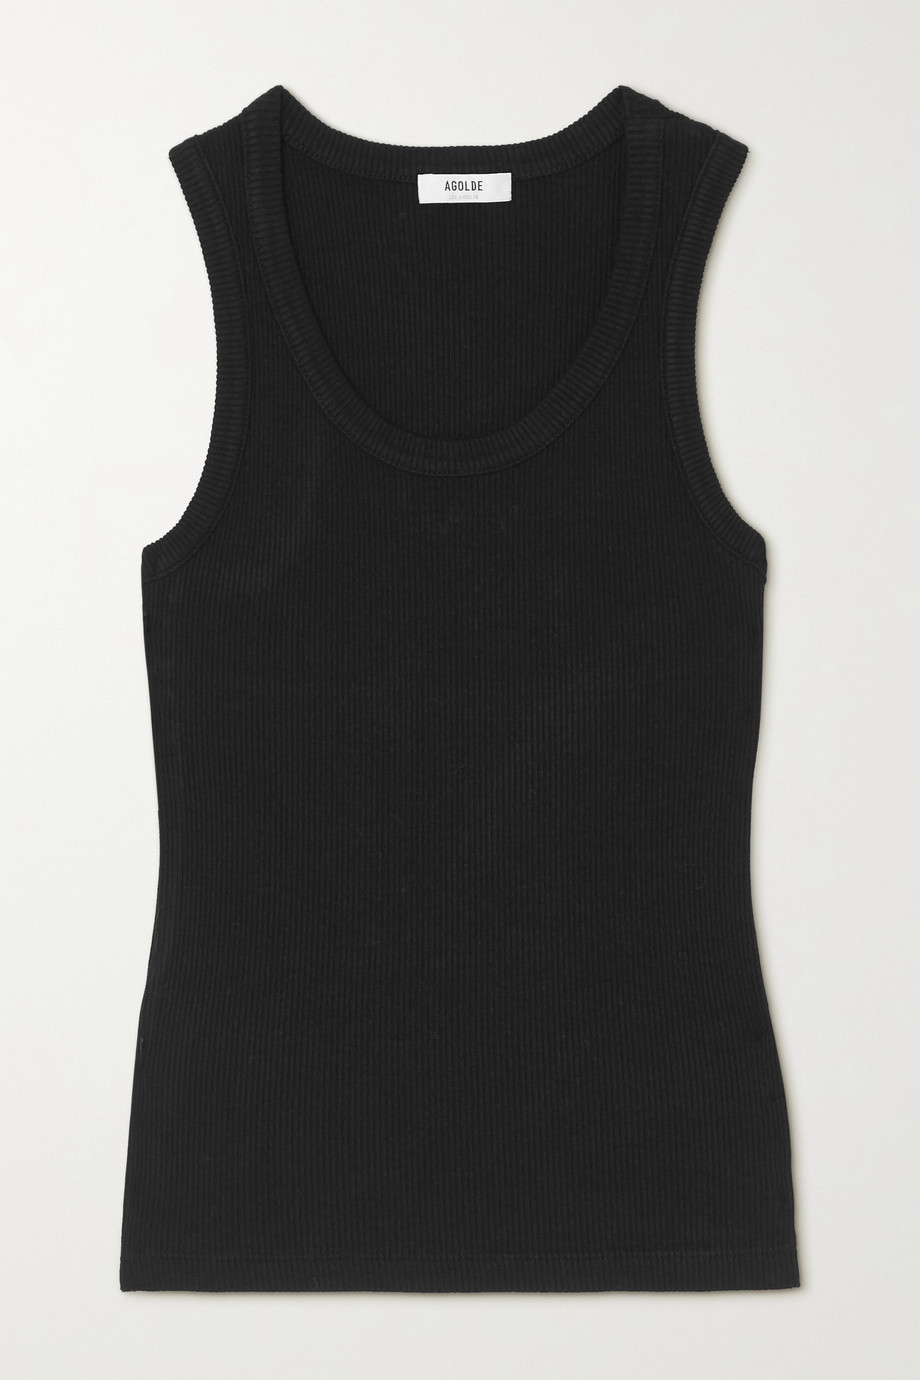 AGOLDE Poppy ribbed organic cotton and Tencel-blend jersey tank